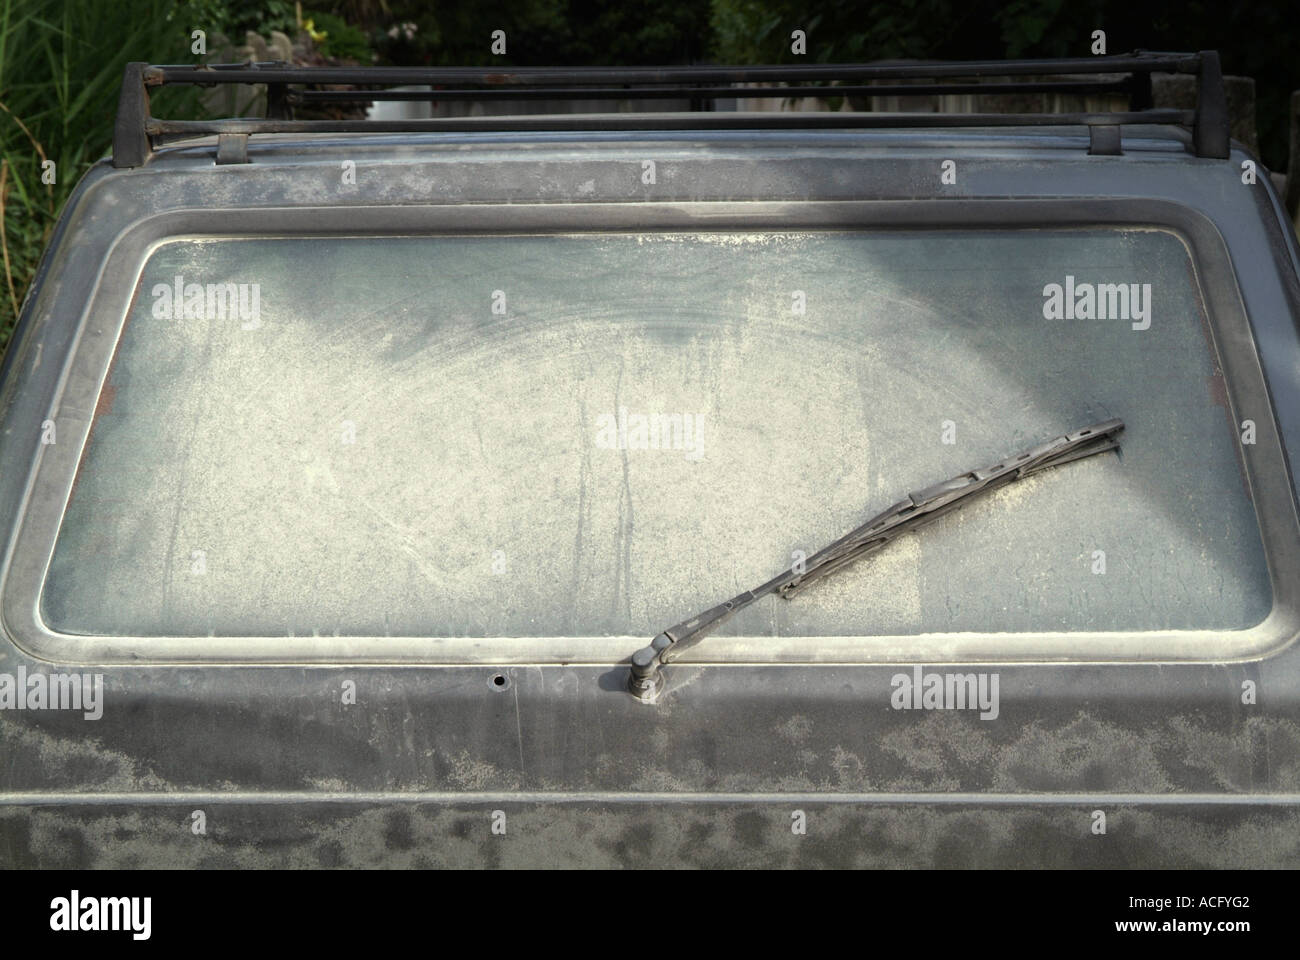 dirty, car, rear, window, unsafe, can't, see, wash, wiper, wiperblade, blade, - Stock Image